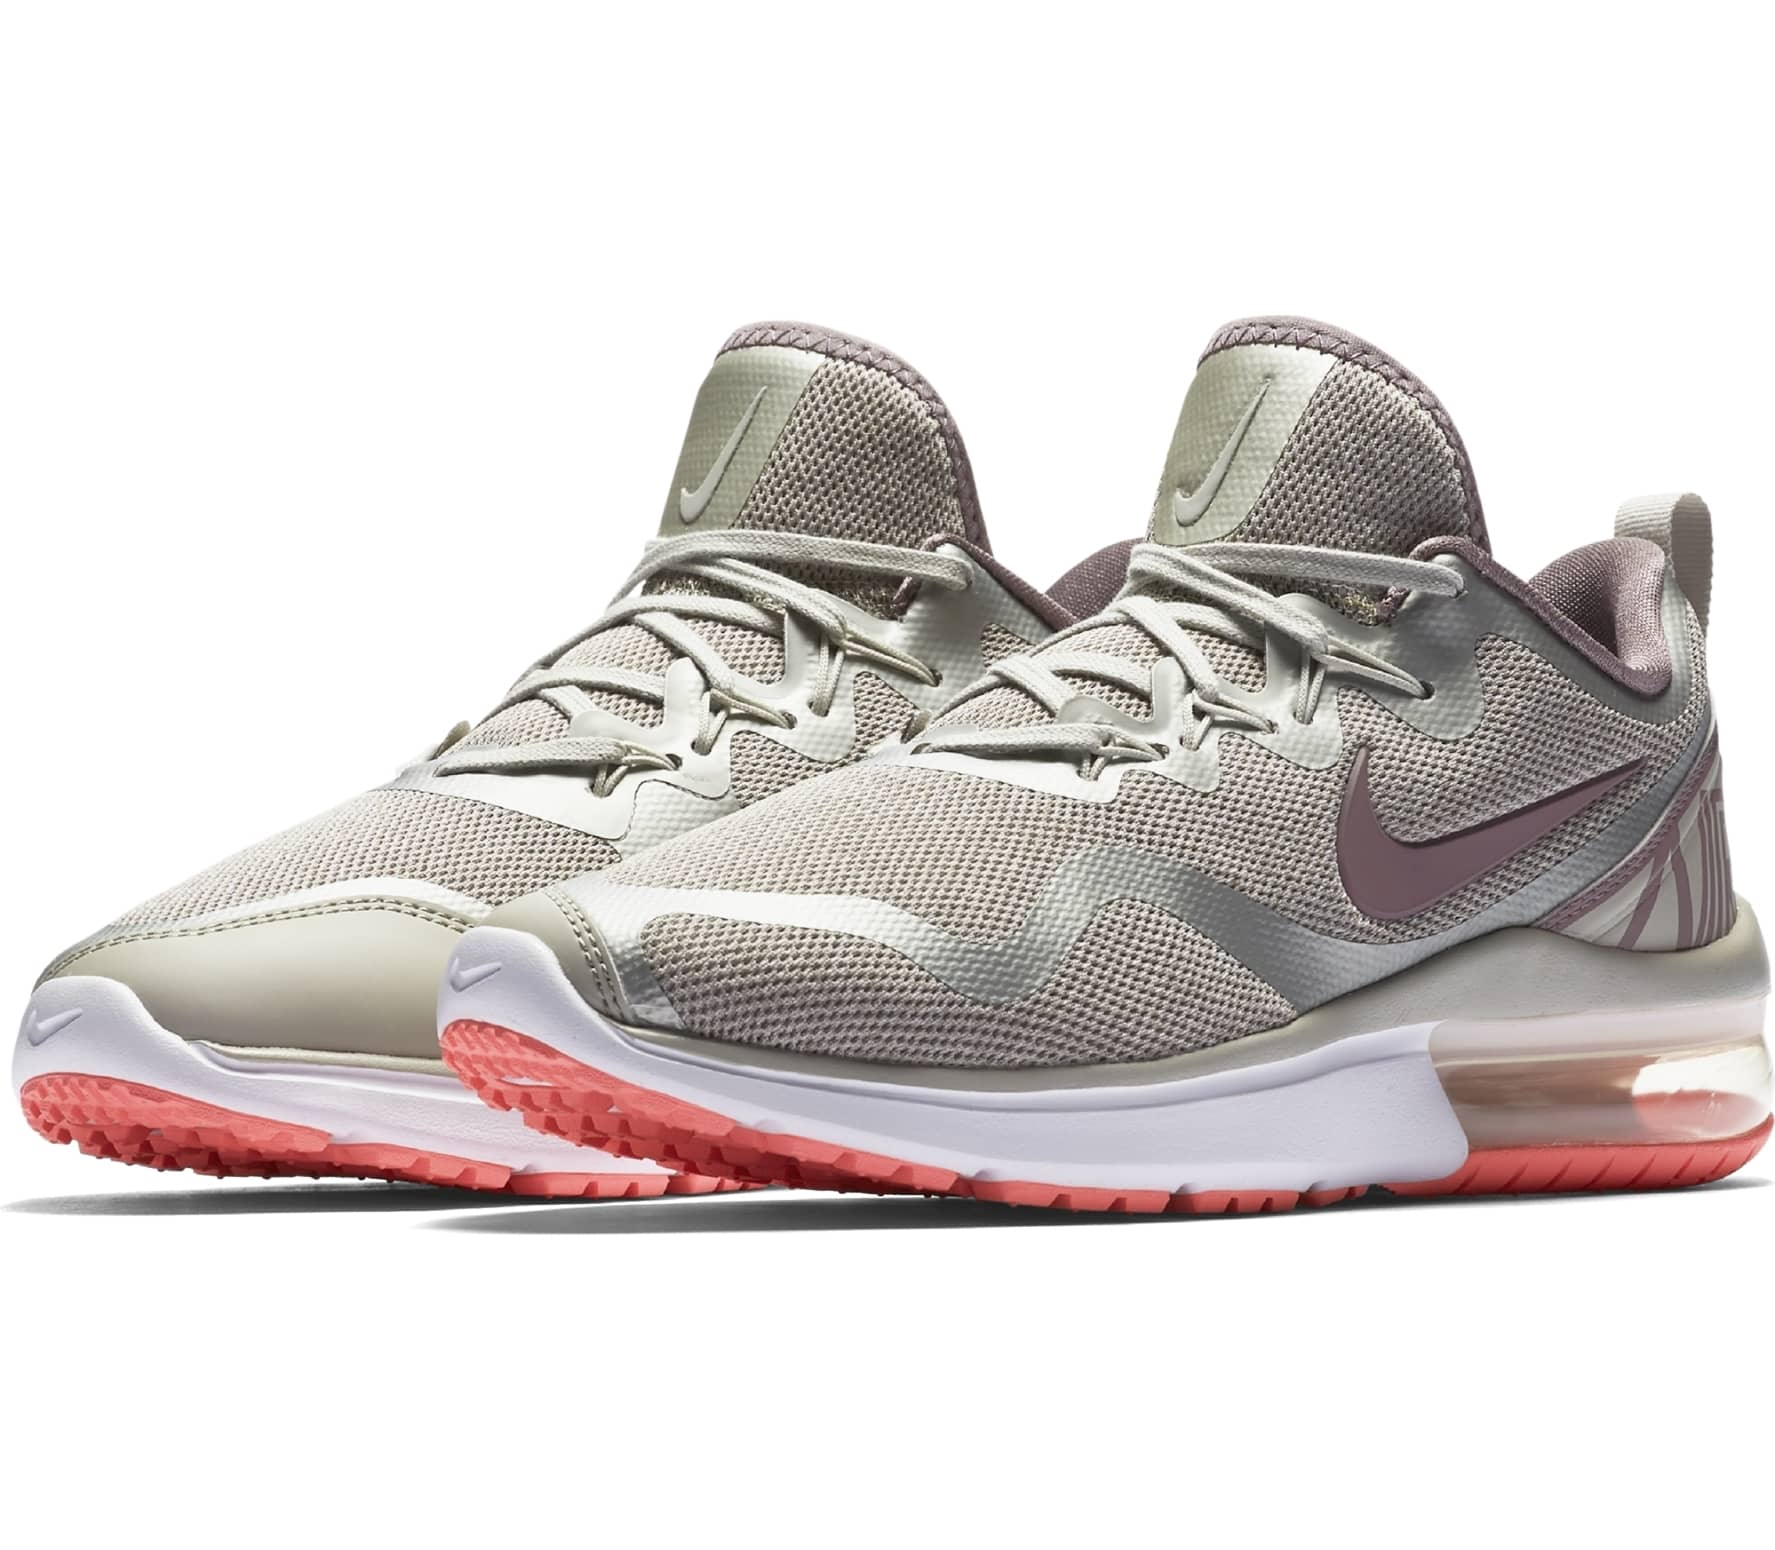 nike air max fury women 39 s running shoes light grey pink buy it at the keller sports online. Black Bedroom Furniture Sets. Home Design Ideas